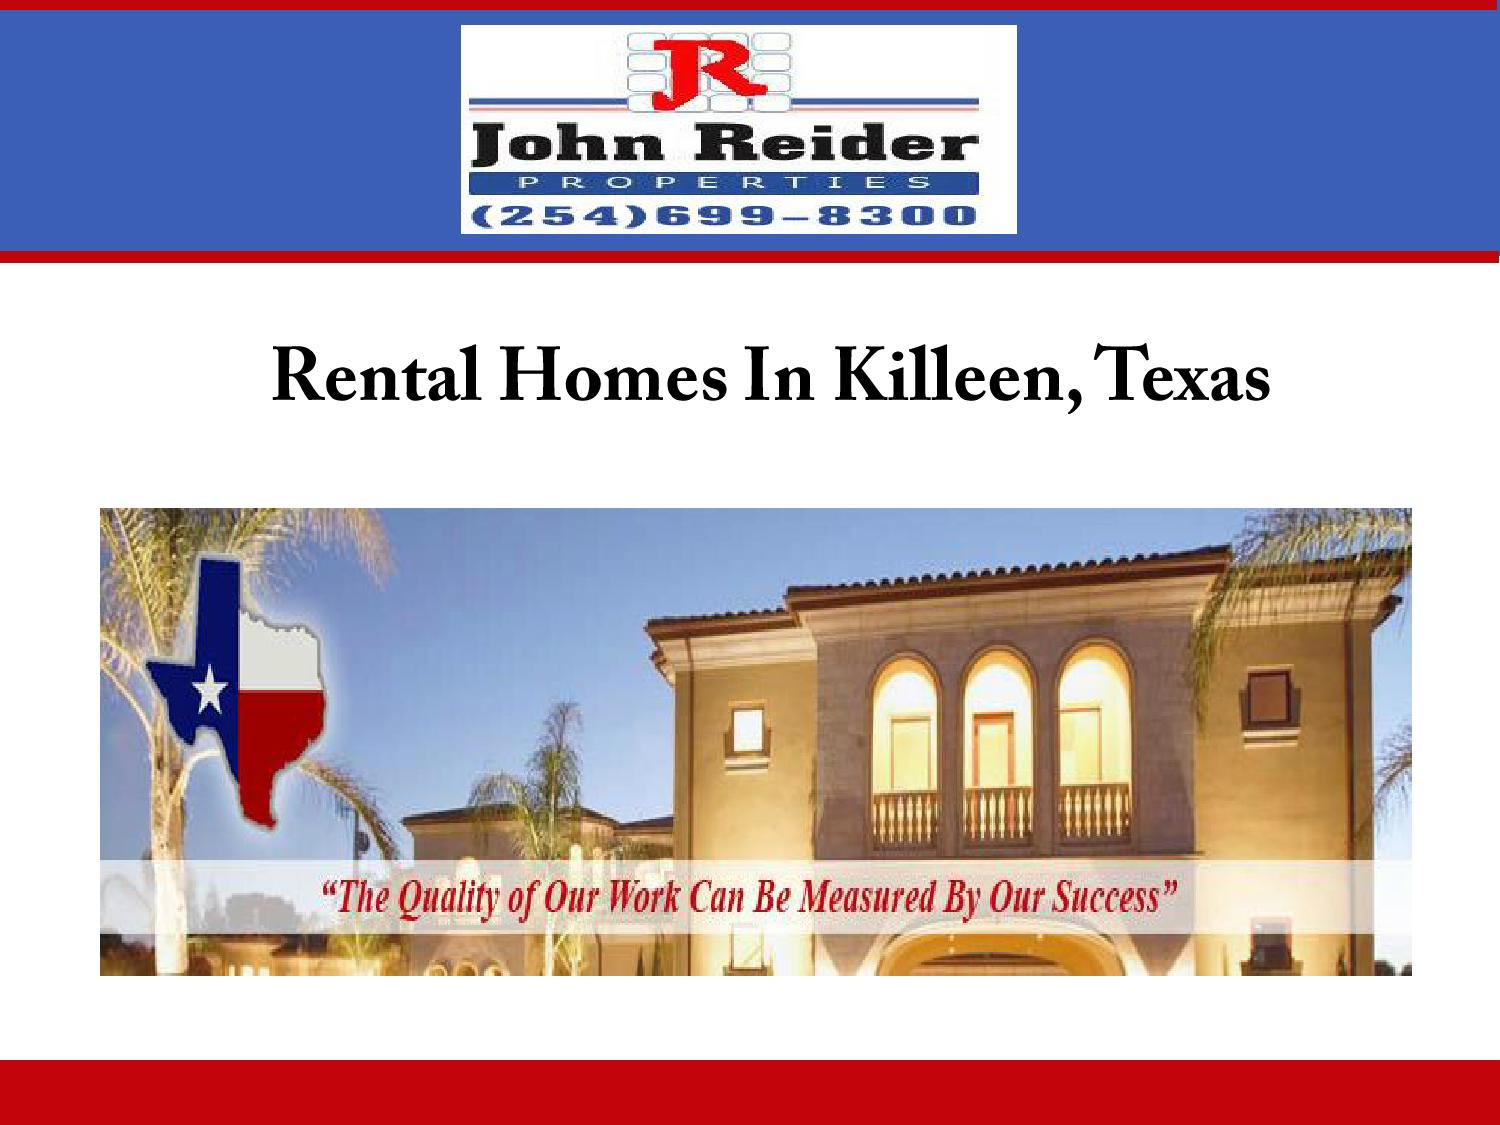 Rental homes in killeen texas by johnreider issuu for Home builders in killeen tx